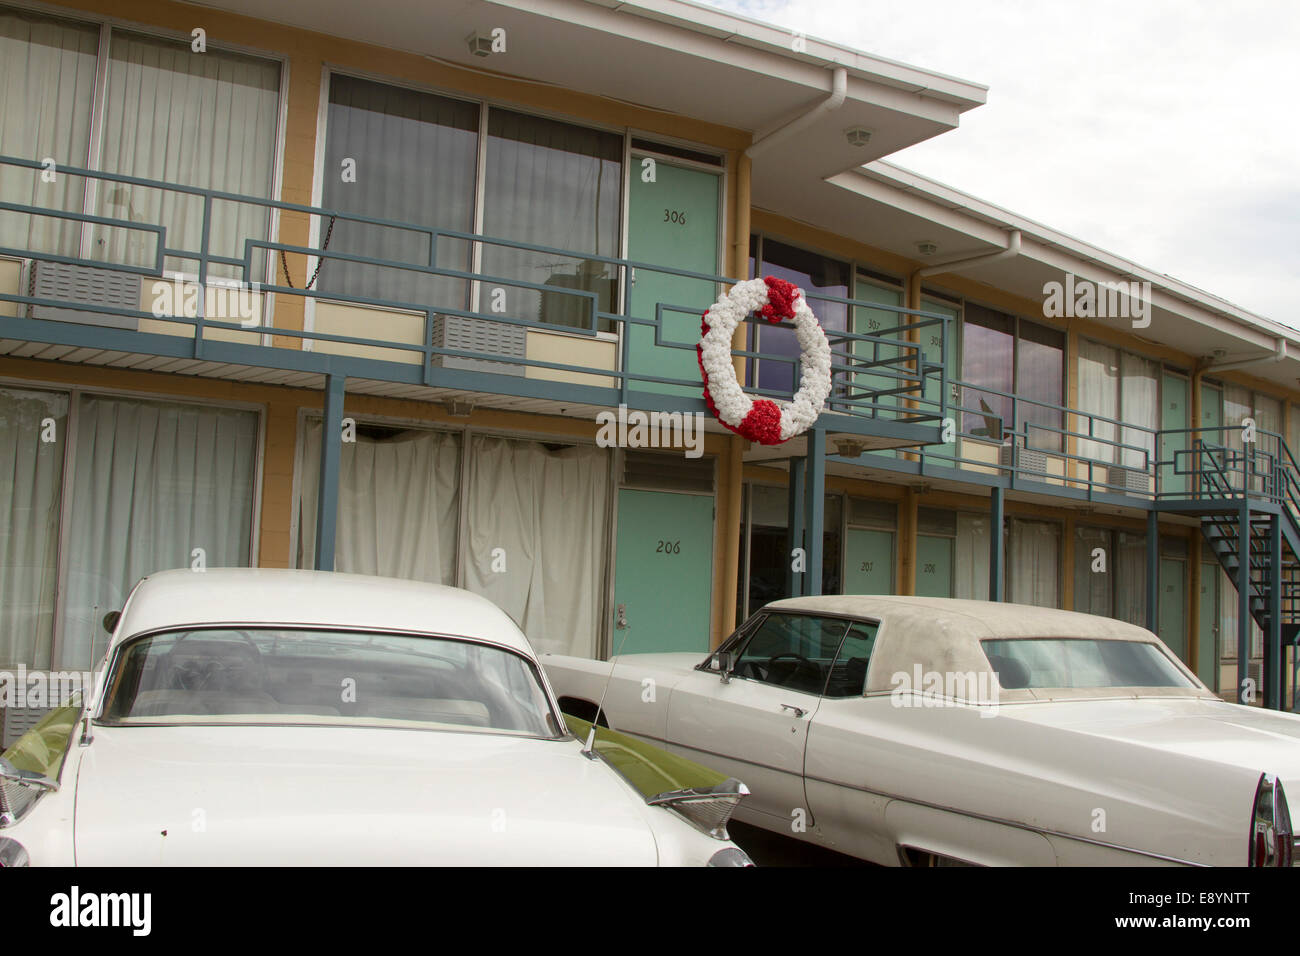 National Civil Rights Museum located in the old Lorraine Motel, site of the Martin Luther King, Jr assassination, in Memphis TN Stock Photo